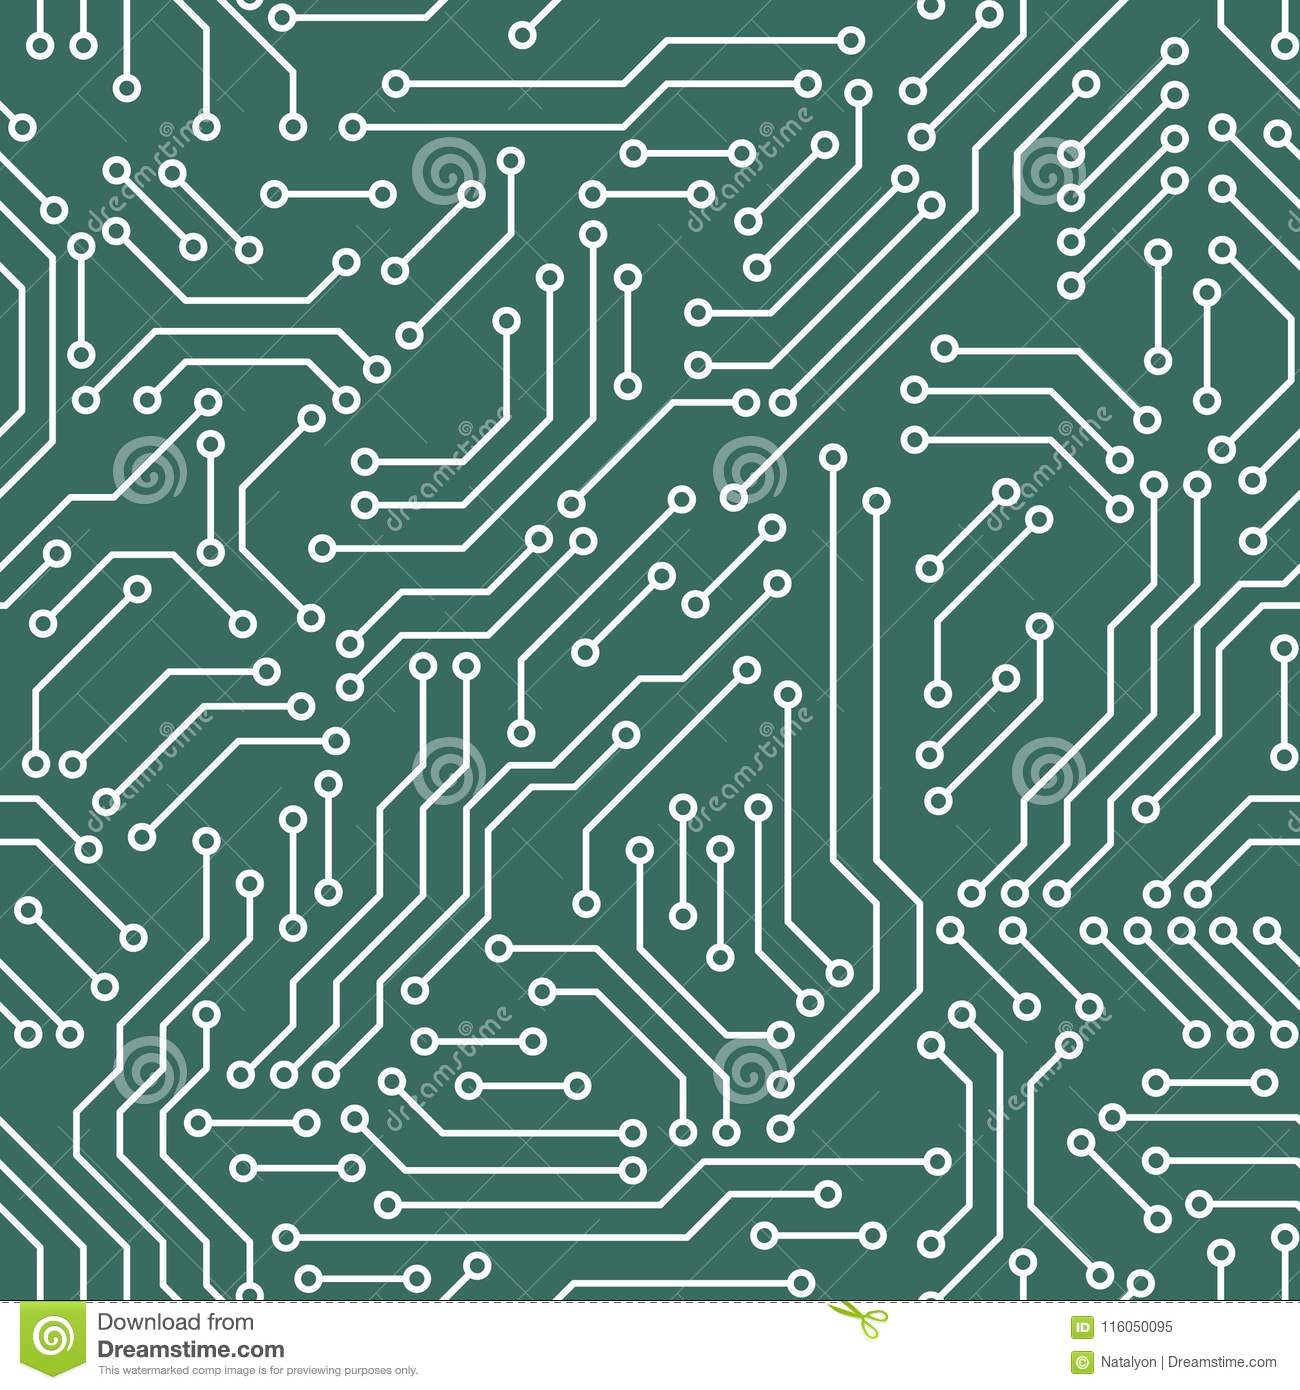 Printed Circuit Board Green And White Computer Technology Seamless Of Illustration A Pattern Vector